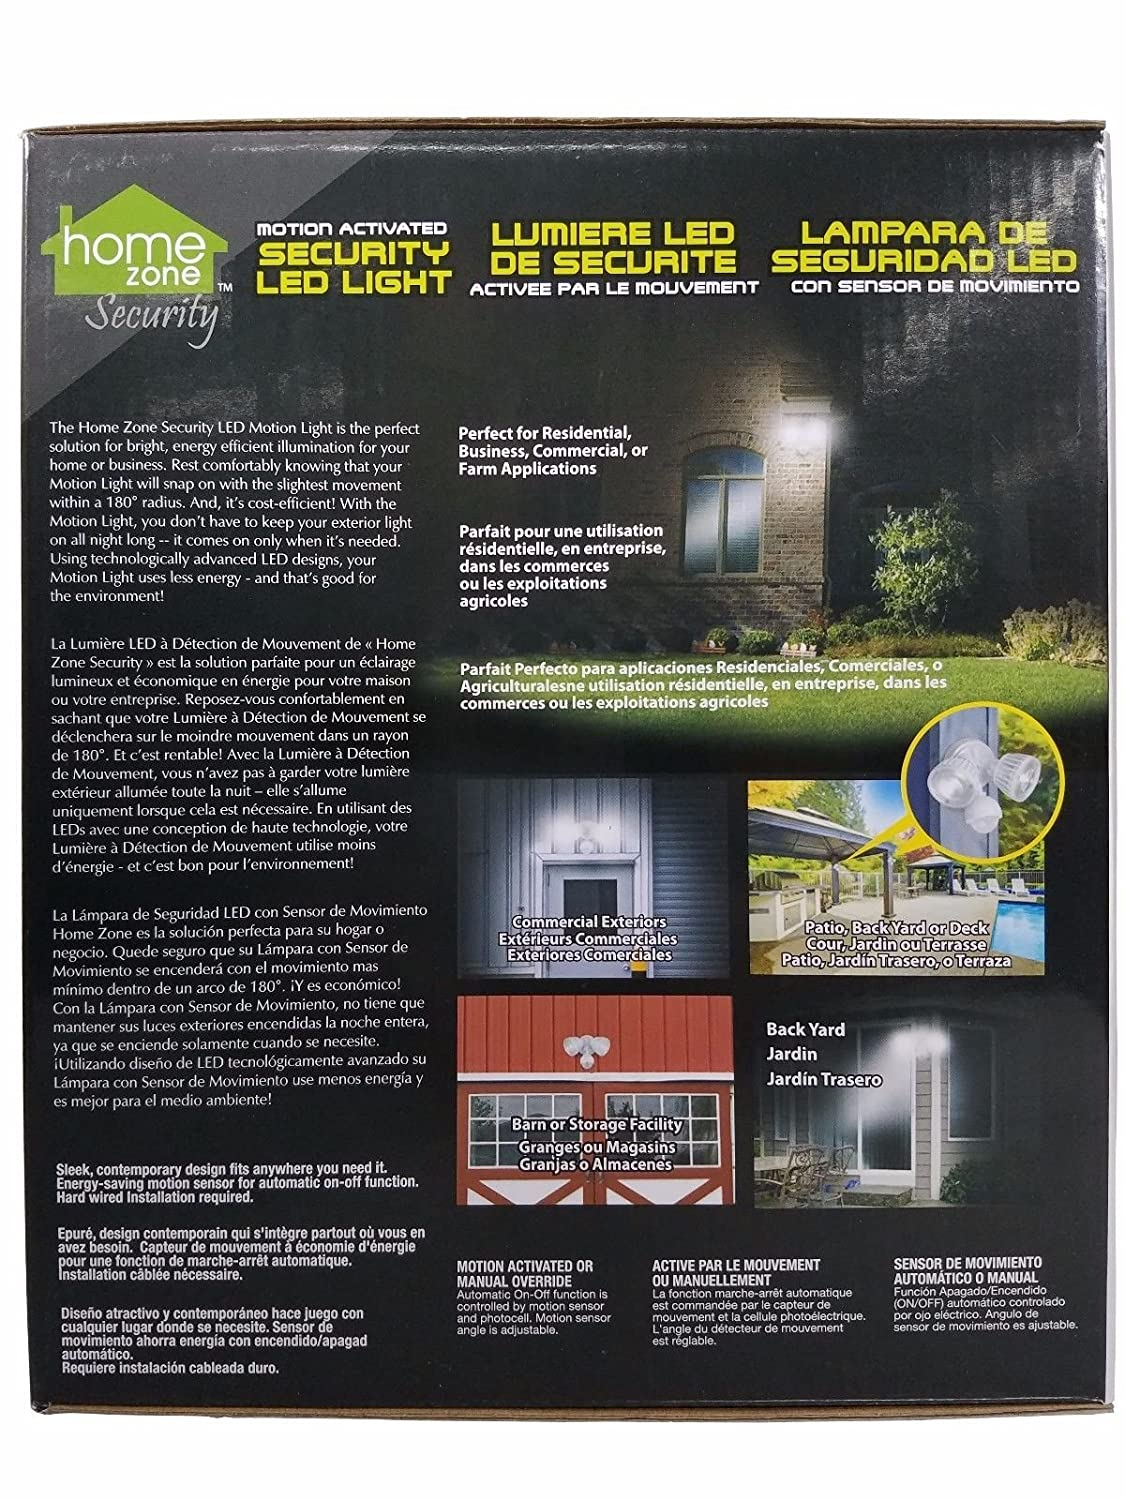 Home Zone Motion Activated Security LED Light 180 Degree Detection 2500 Lumens - - Amazon.com